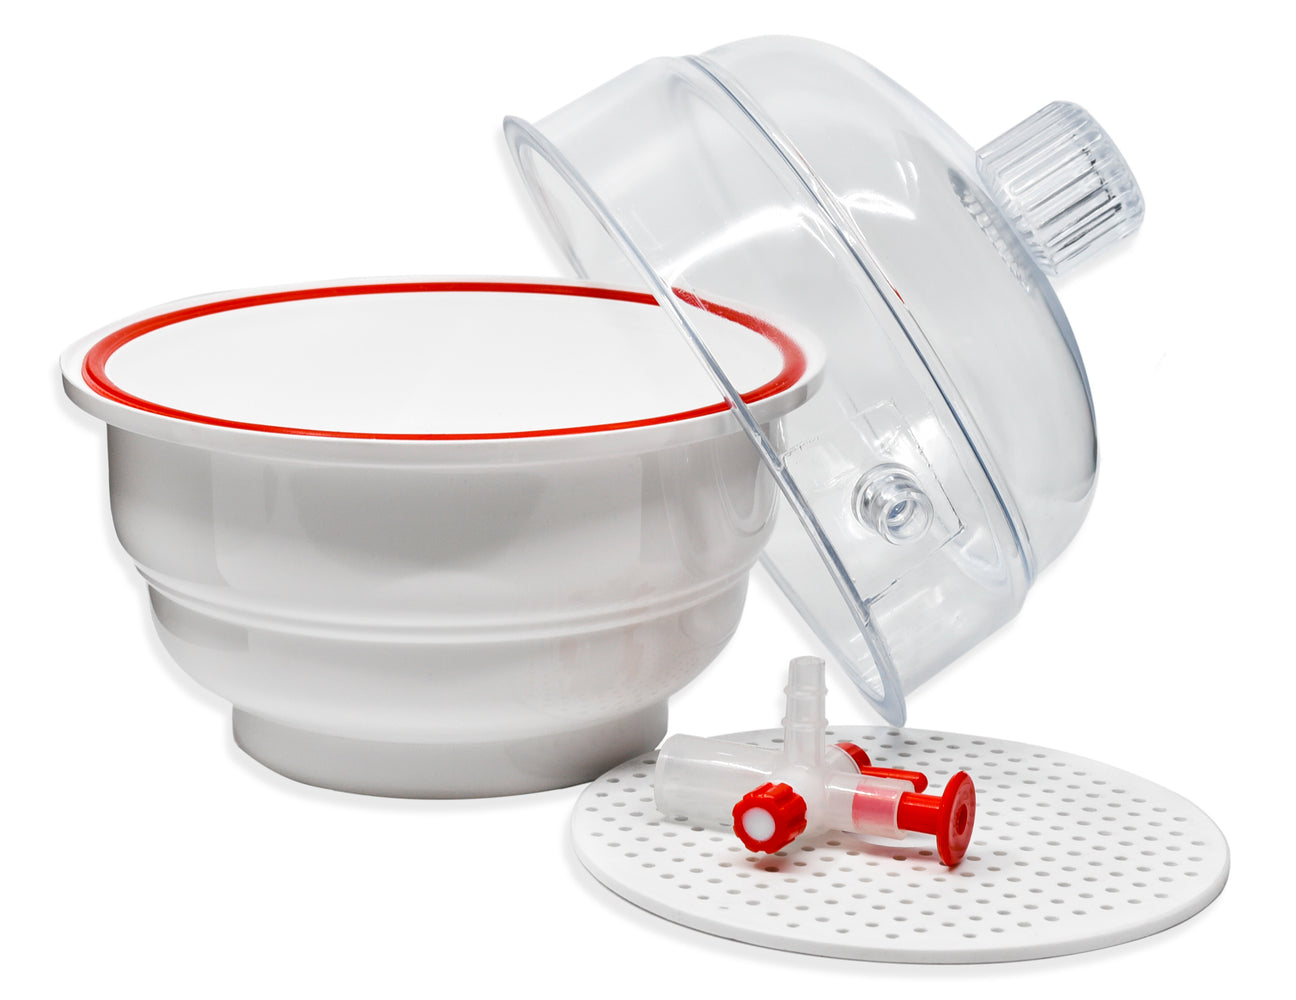 Desiccator Vacuum, 15cm - Polypropylene and Polycarbonate - PTFE and stopcock